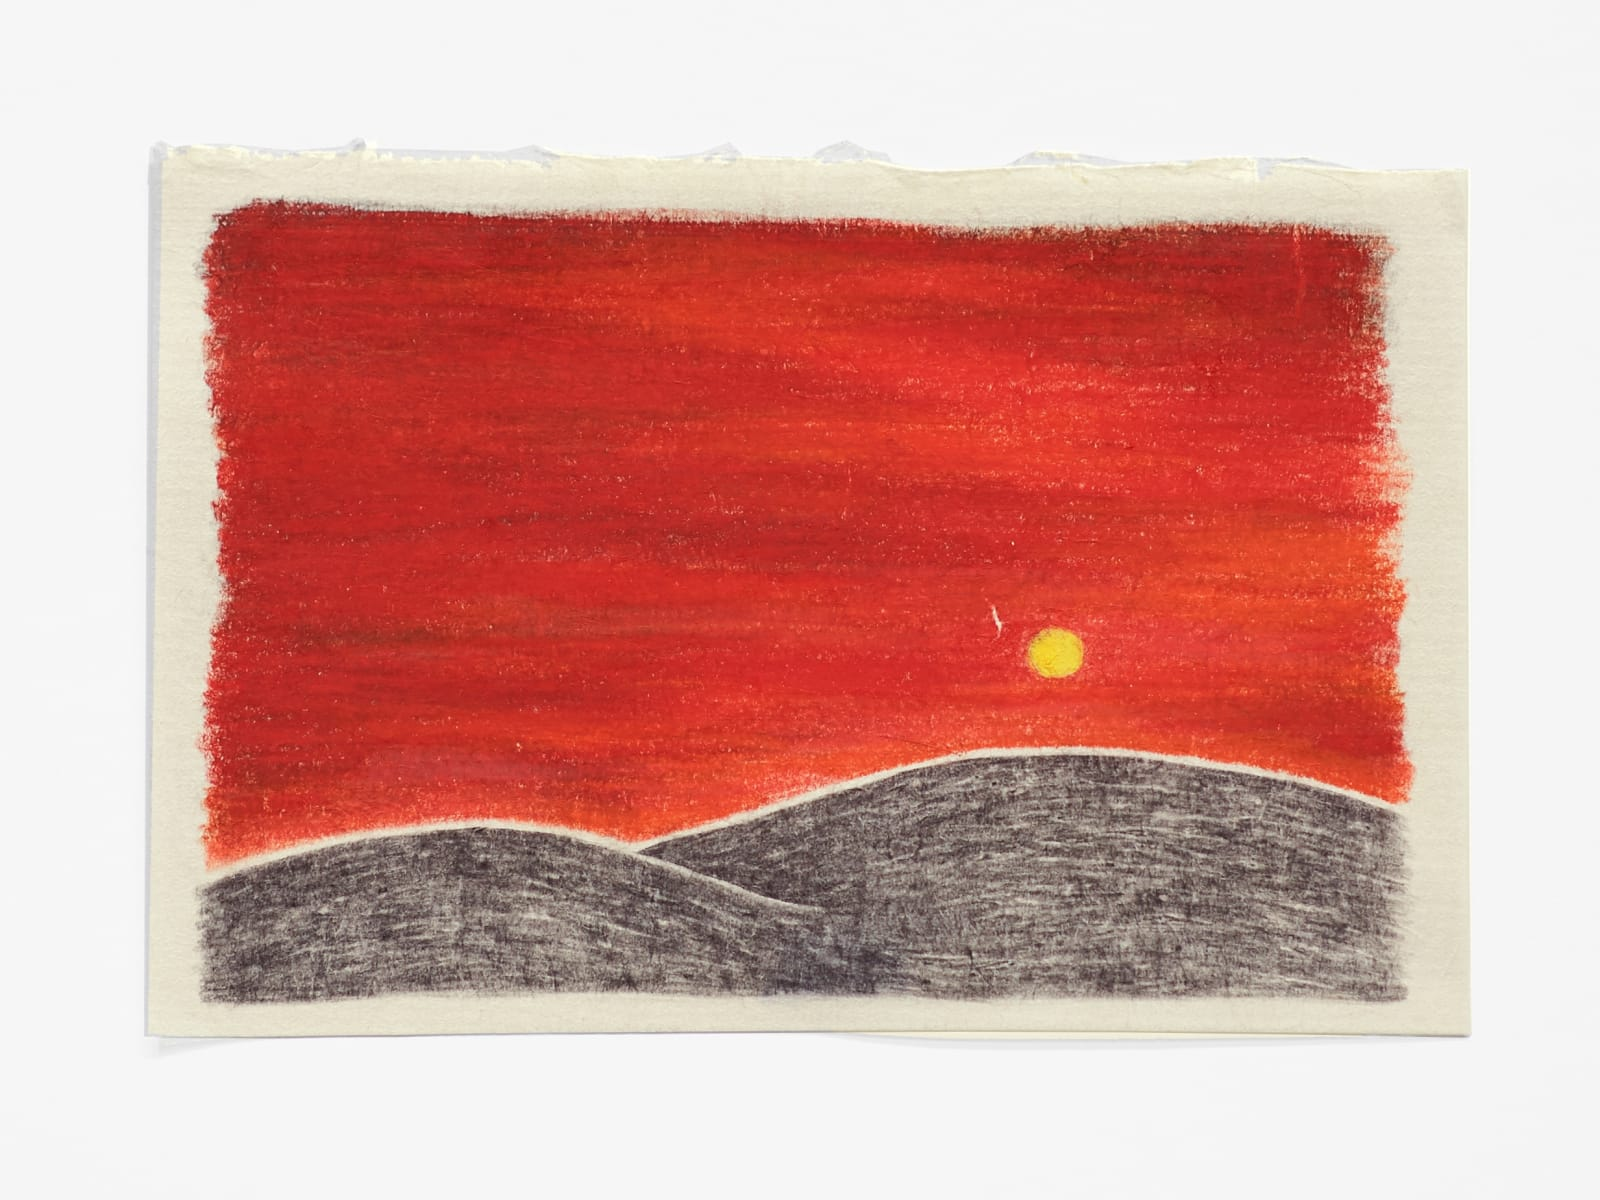 Robyn O'Neil Early on, Moon, 2020 graphite, watercolor, colored pencil 5 3/4 x 8 1/2 in (14.6 x 21.6 cm) 10 3/4 x 13 1/2 x 1 1/2 in (27.3 x 34.3 x 3.8 cm) framed RON 171 SOLD